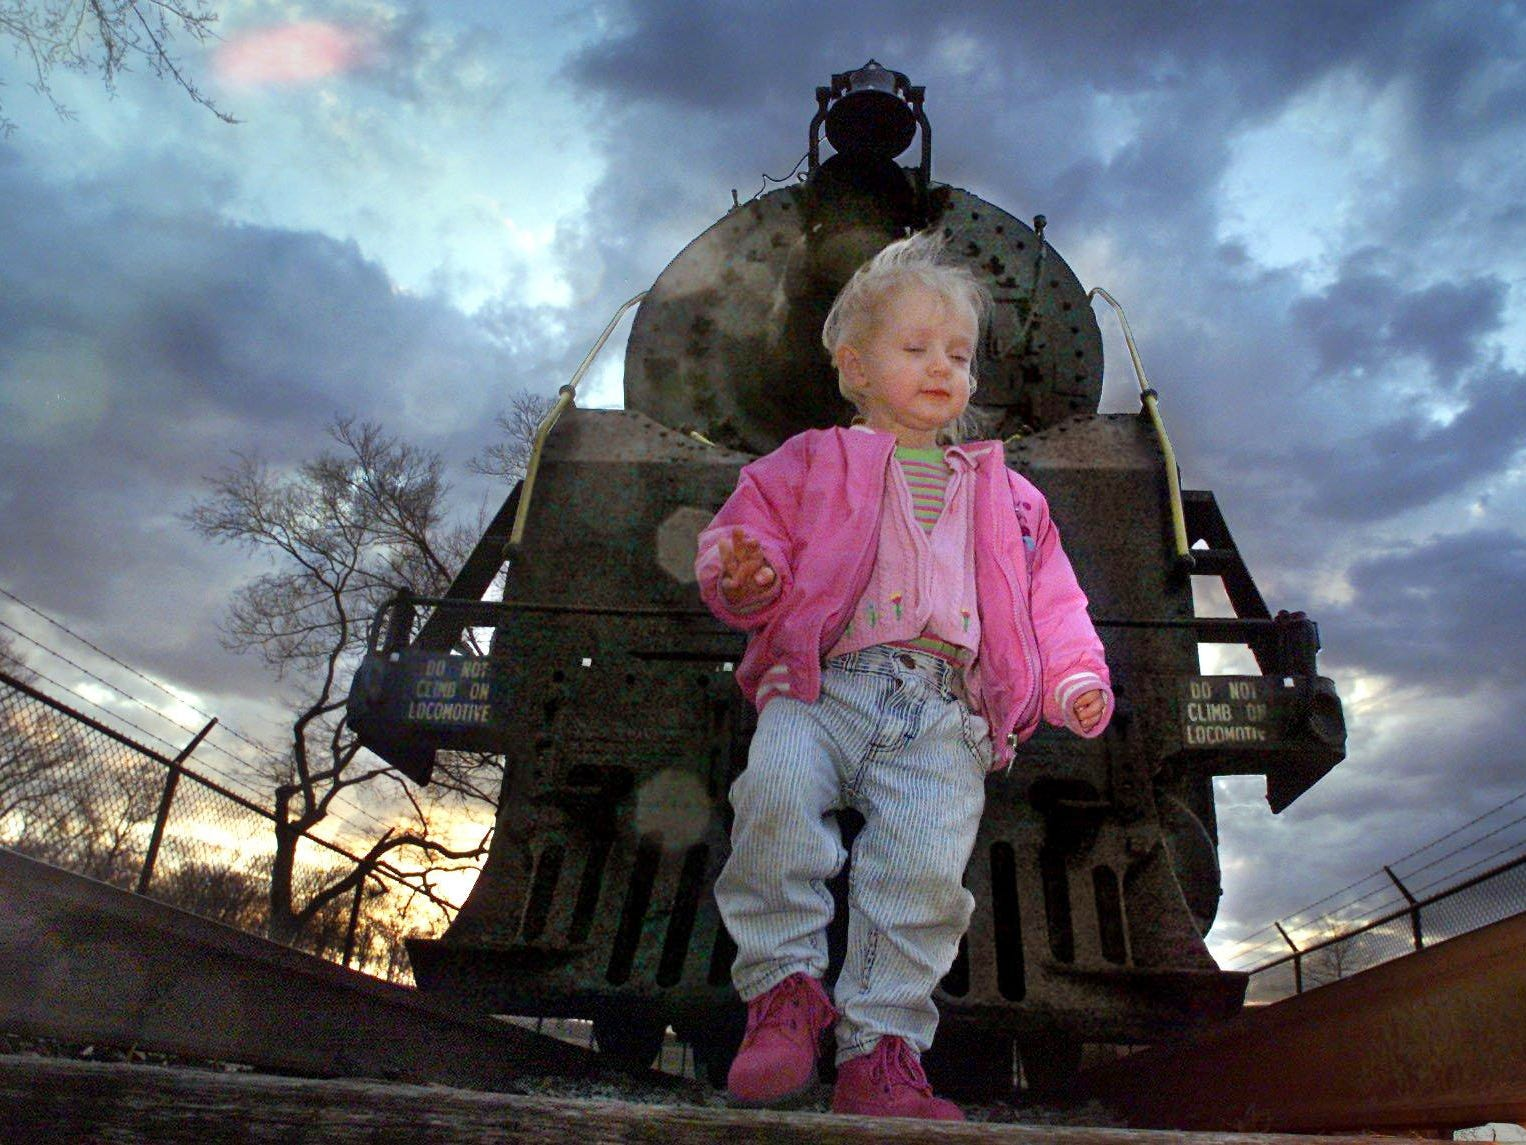 Haley Stevens, 2, plays in Centennial Park Feb. 8, 2001 in front of the steam locomotive that's been a long-time favorite in the park for decades.